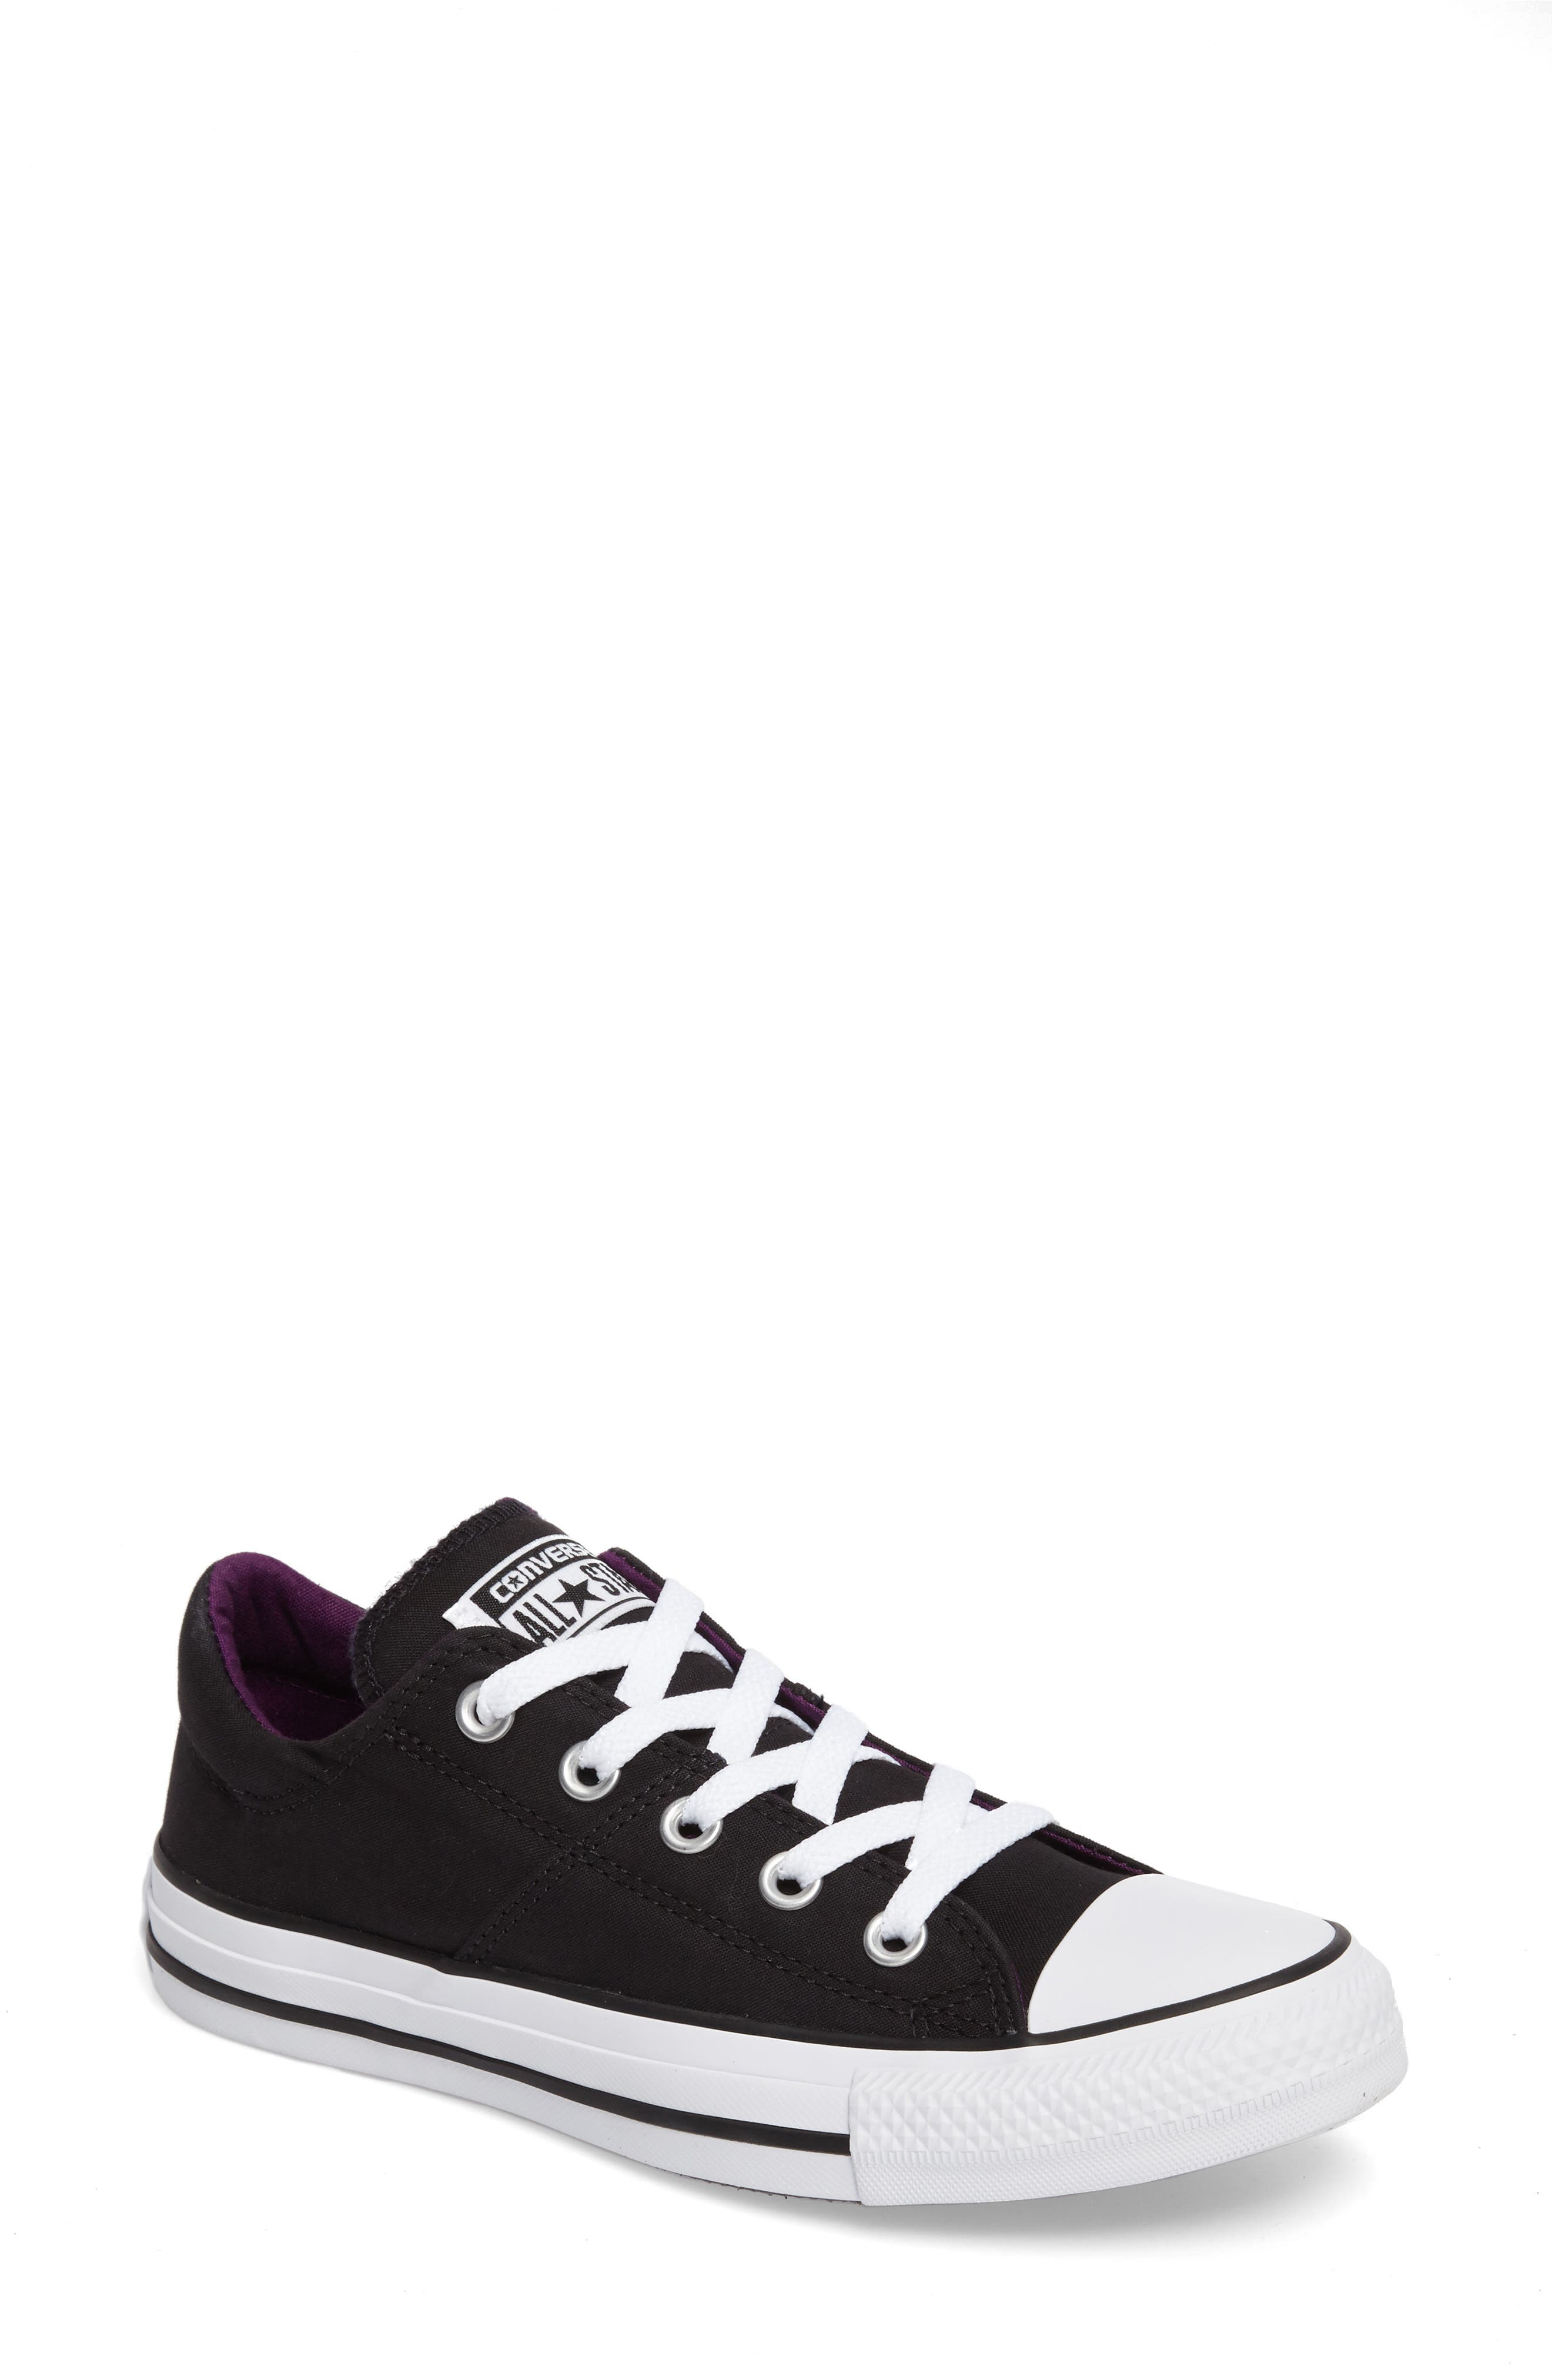 Chuck Taylor<sup>®</sup> All Star<sup>®</sup> Madison Low Top Sneaker,                         Main,                         color, 002